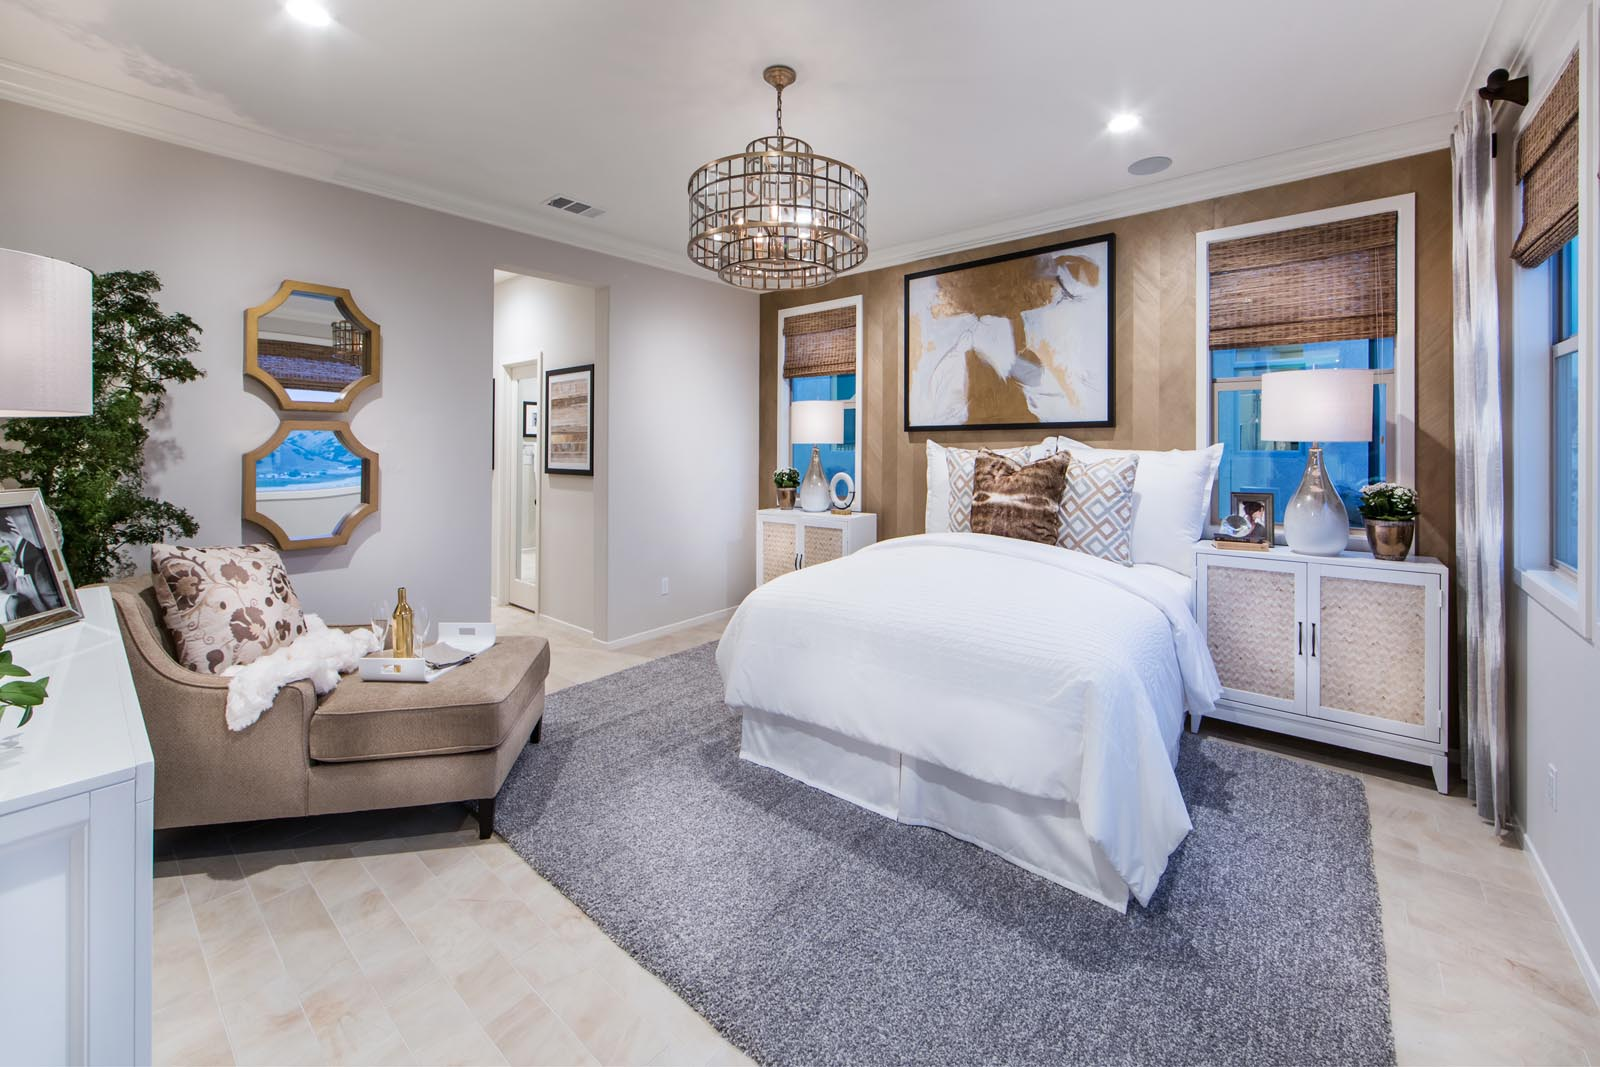 Chula Vista New Homes for Sale - Master Bedroom